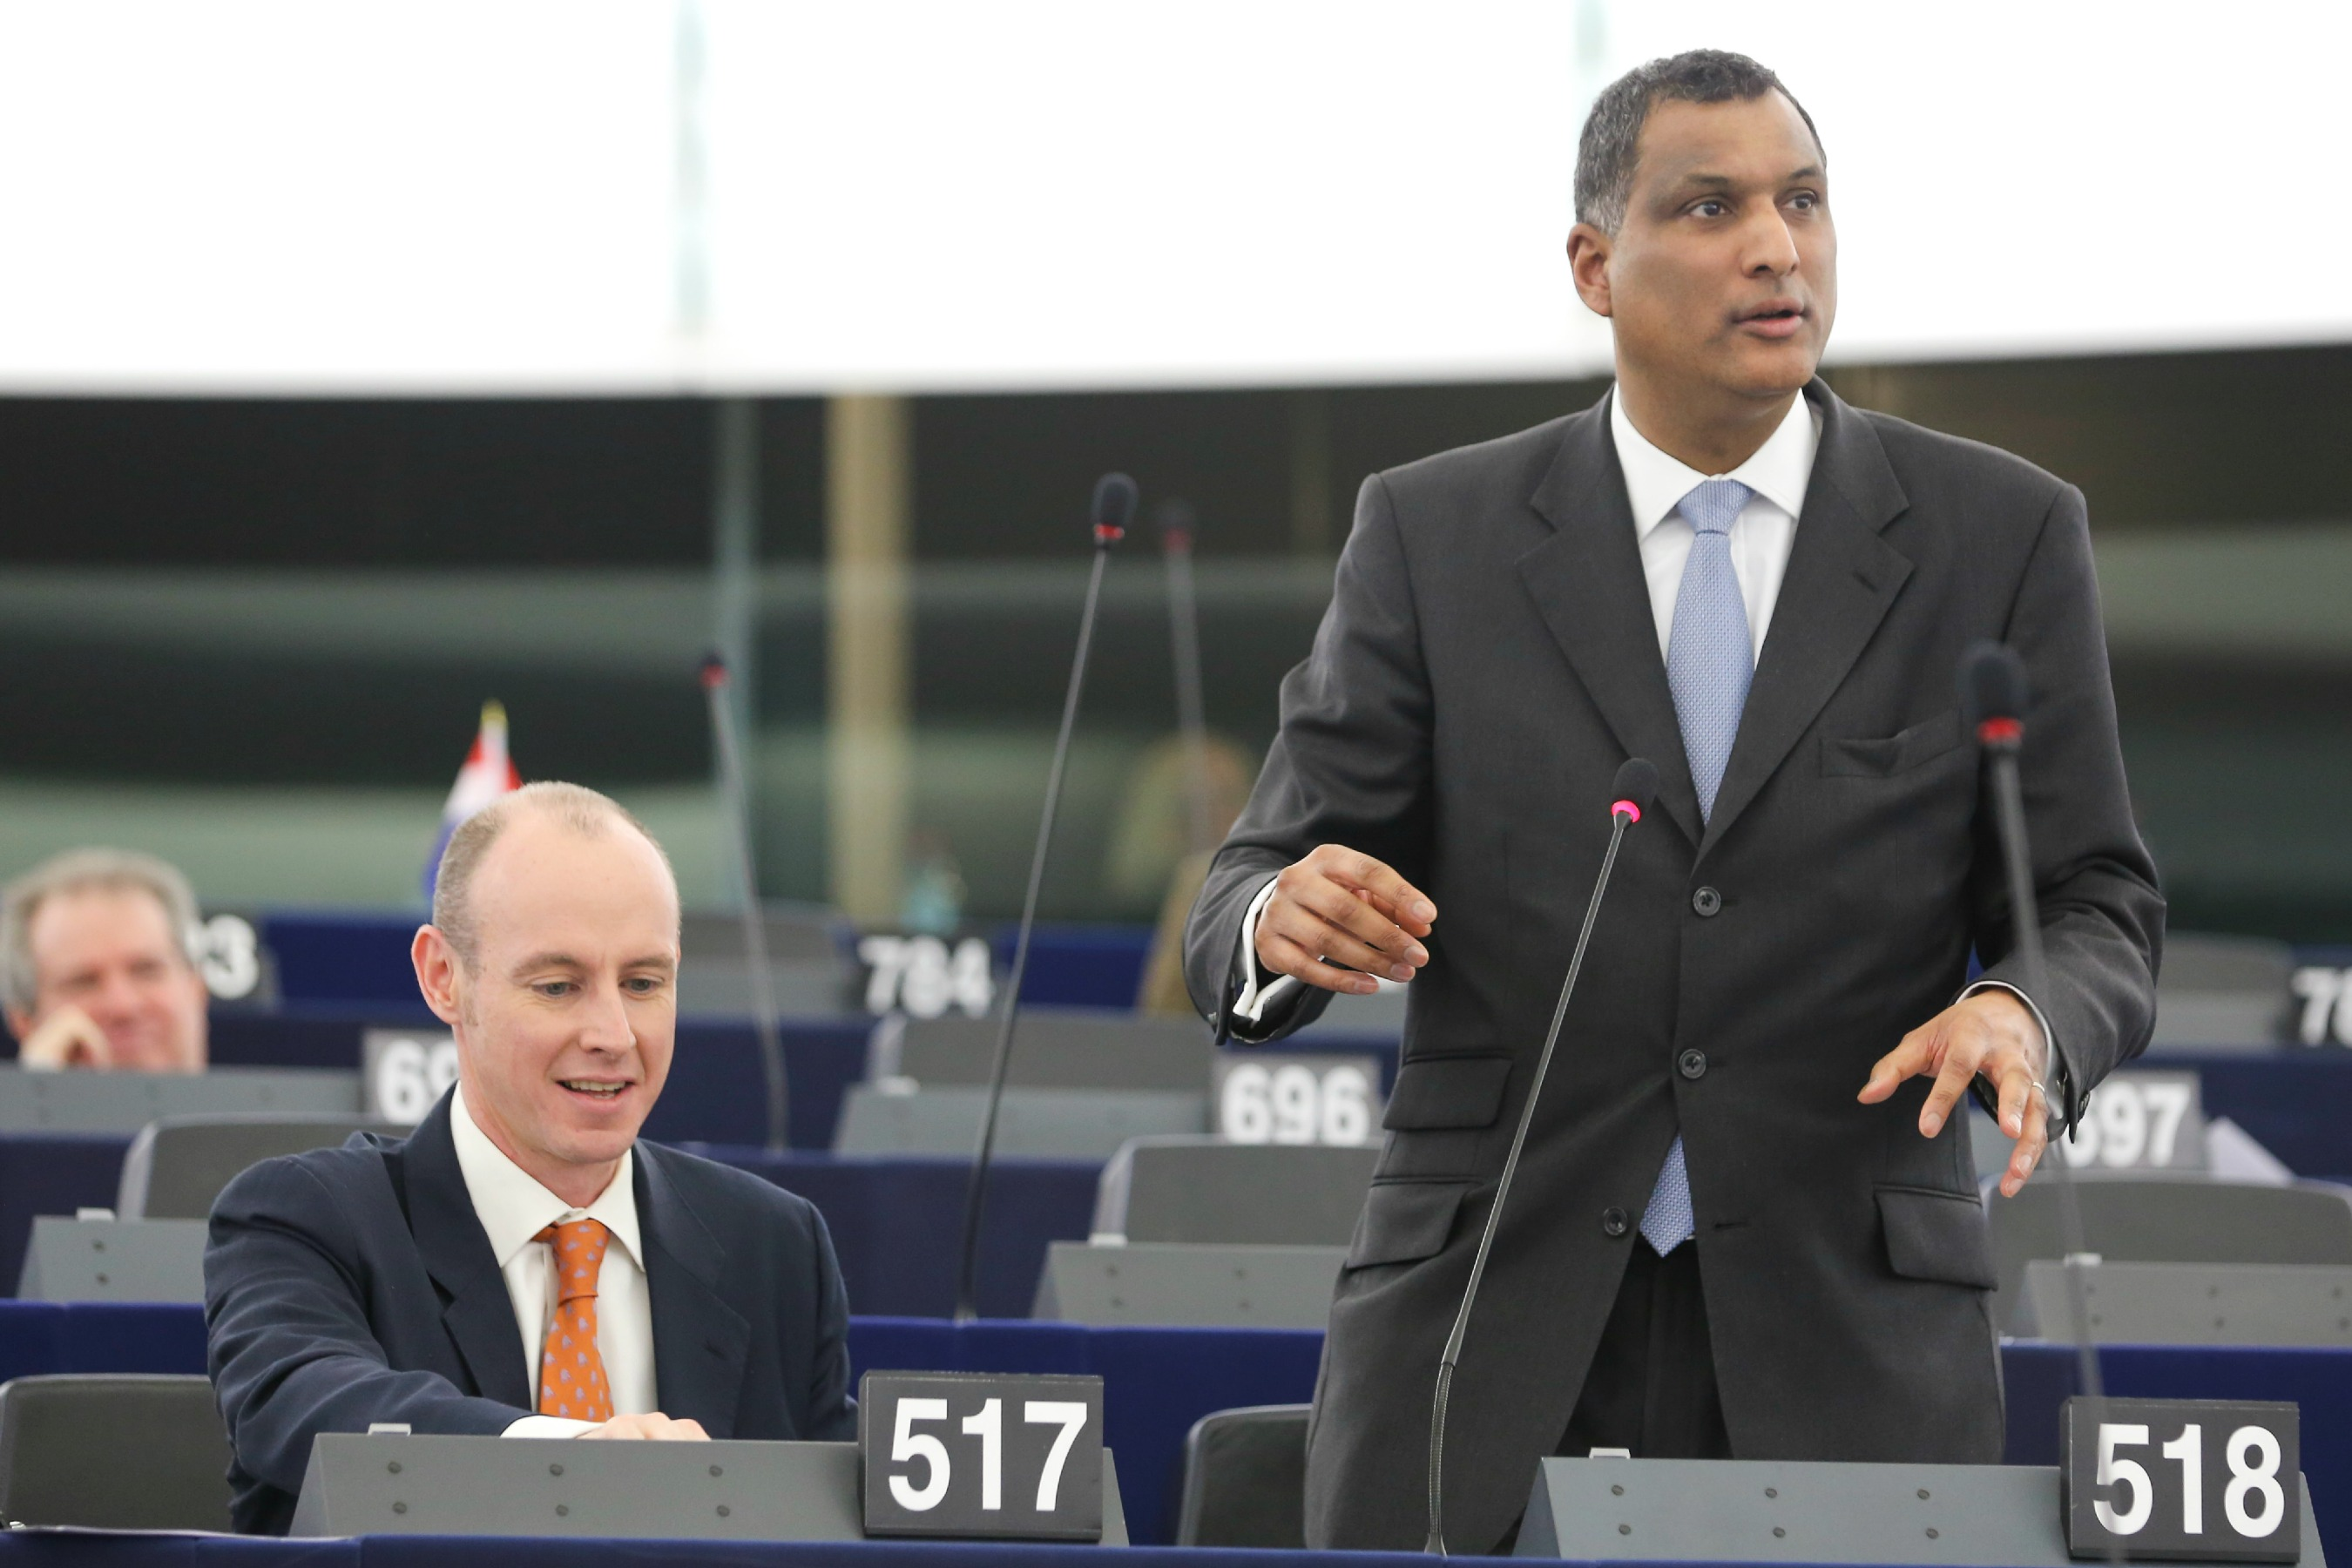 Daniel Hannan and Syed Kamall, leading Conservative MEPs [European Parliament]